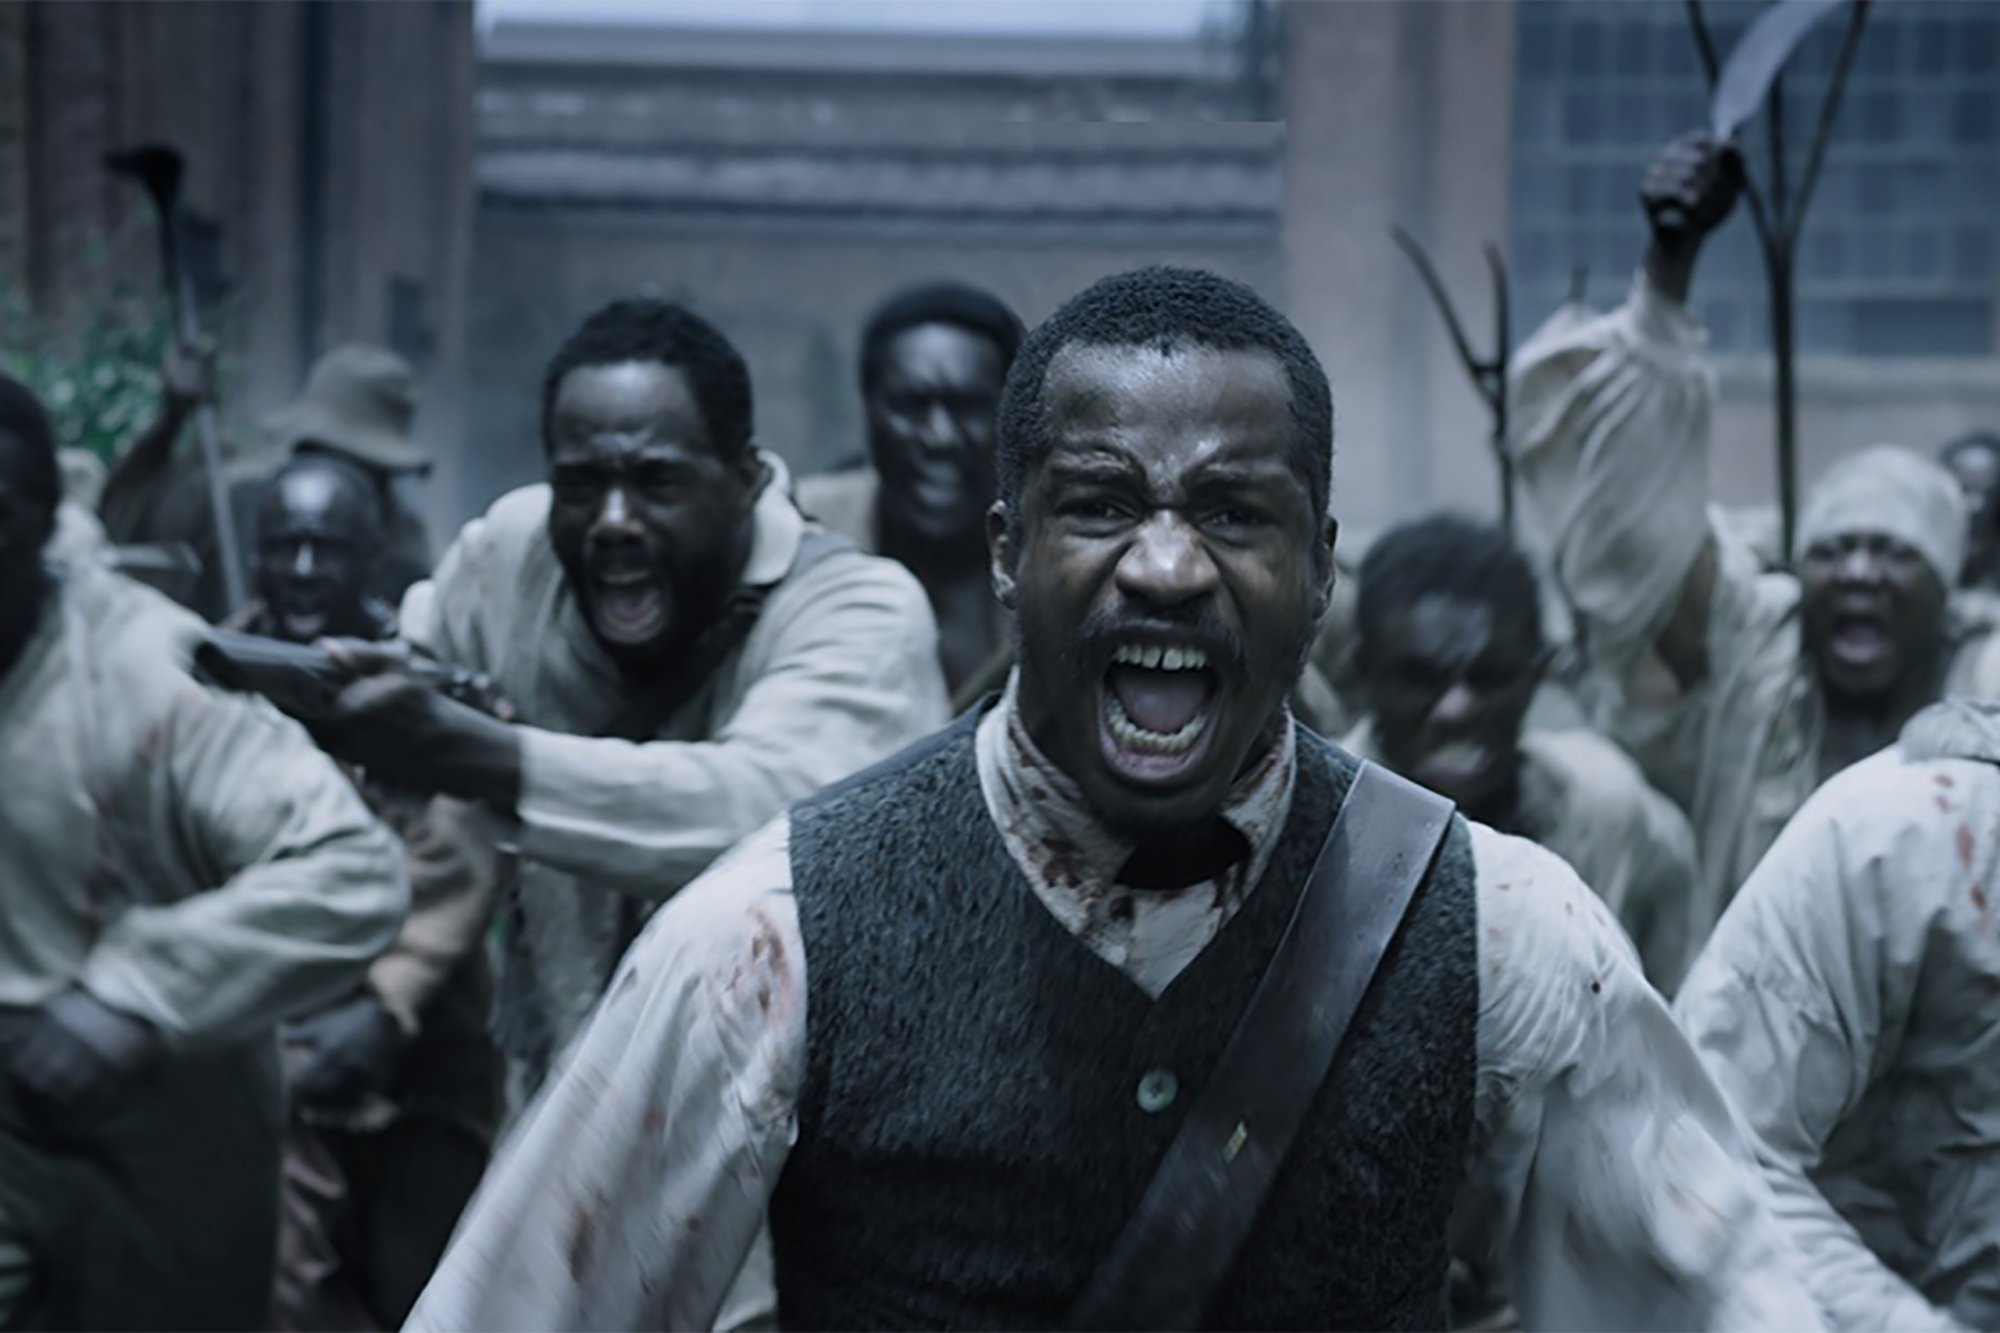 Caption: Colman Domingo and Nate Parker in 'The Birth of a Nation' (2016)